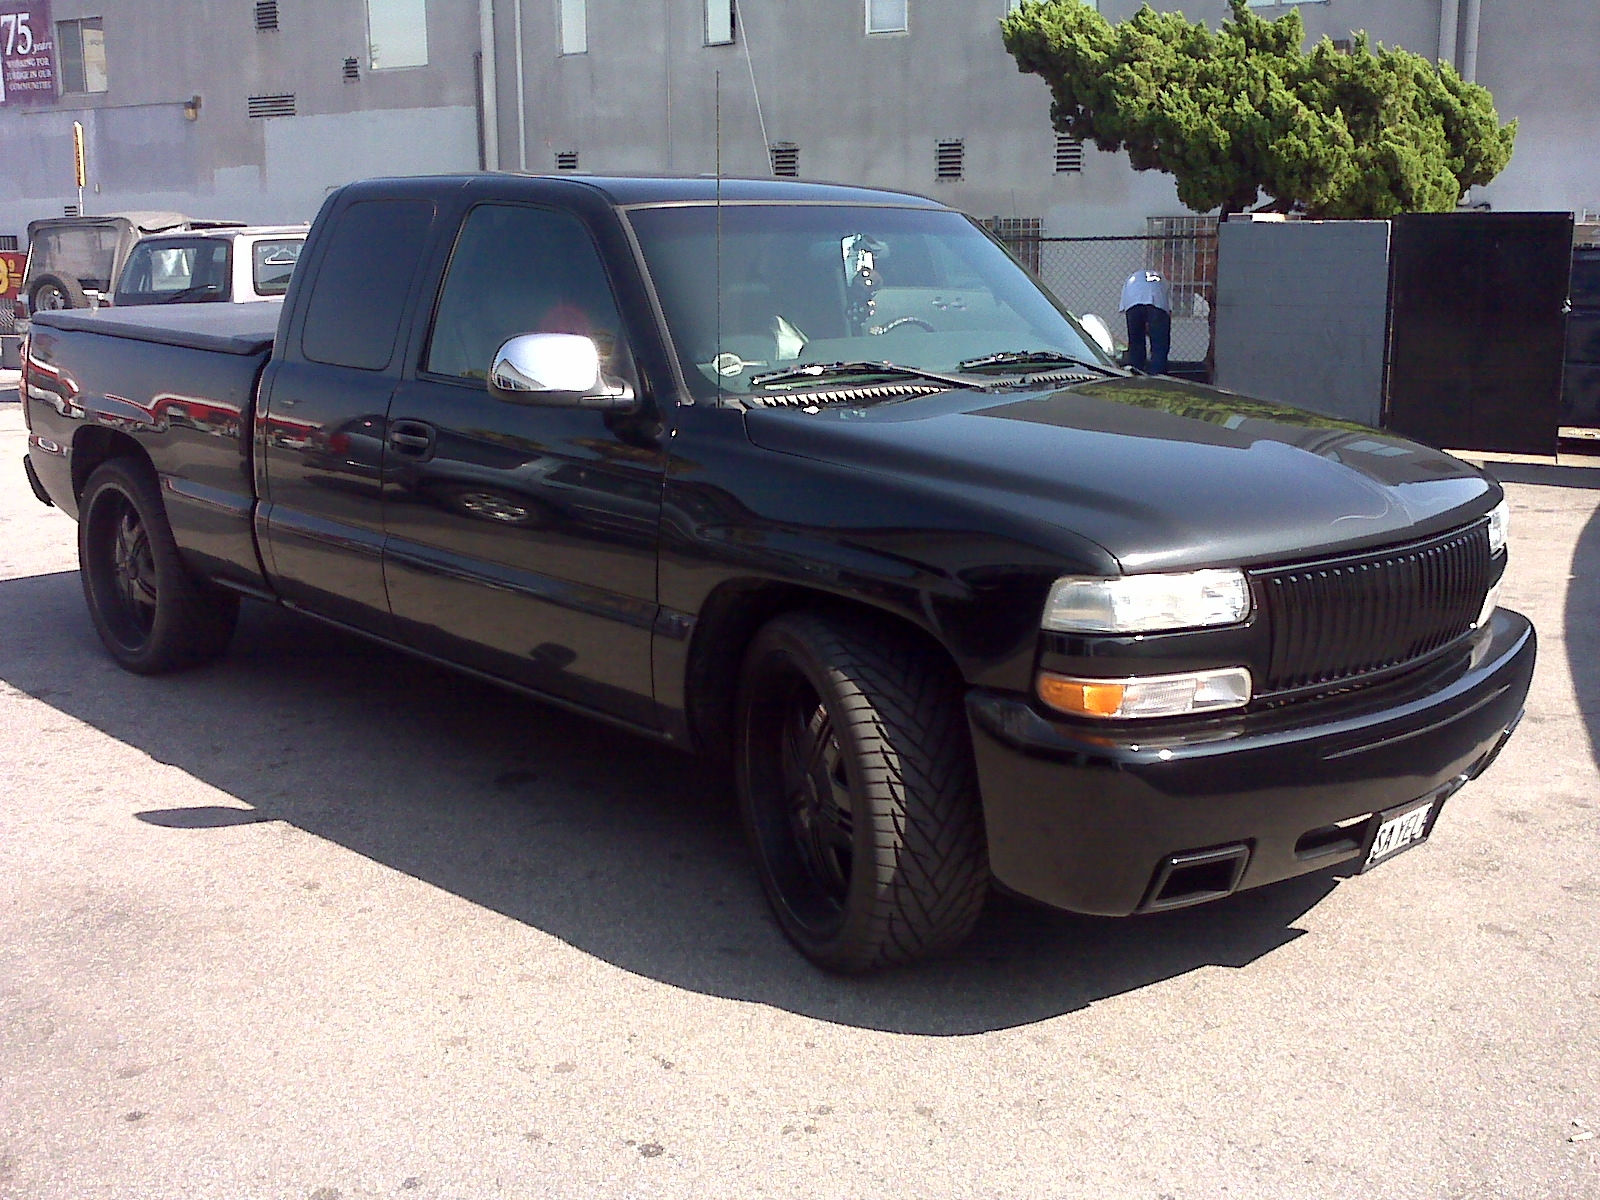 angeldogg 2001 chevrolet silverado 1500 regular cab specs photos. Cars Review. Best American Auto & Cars Review